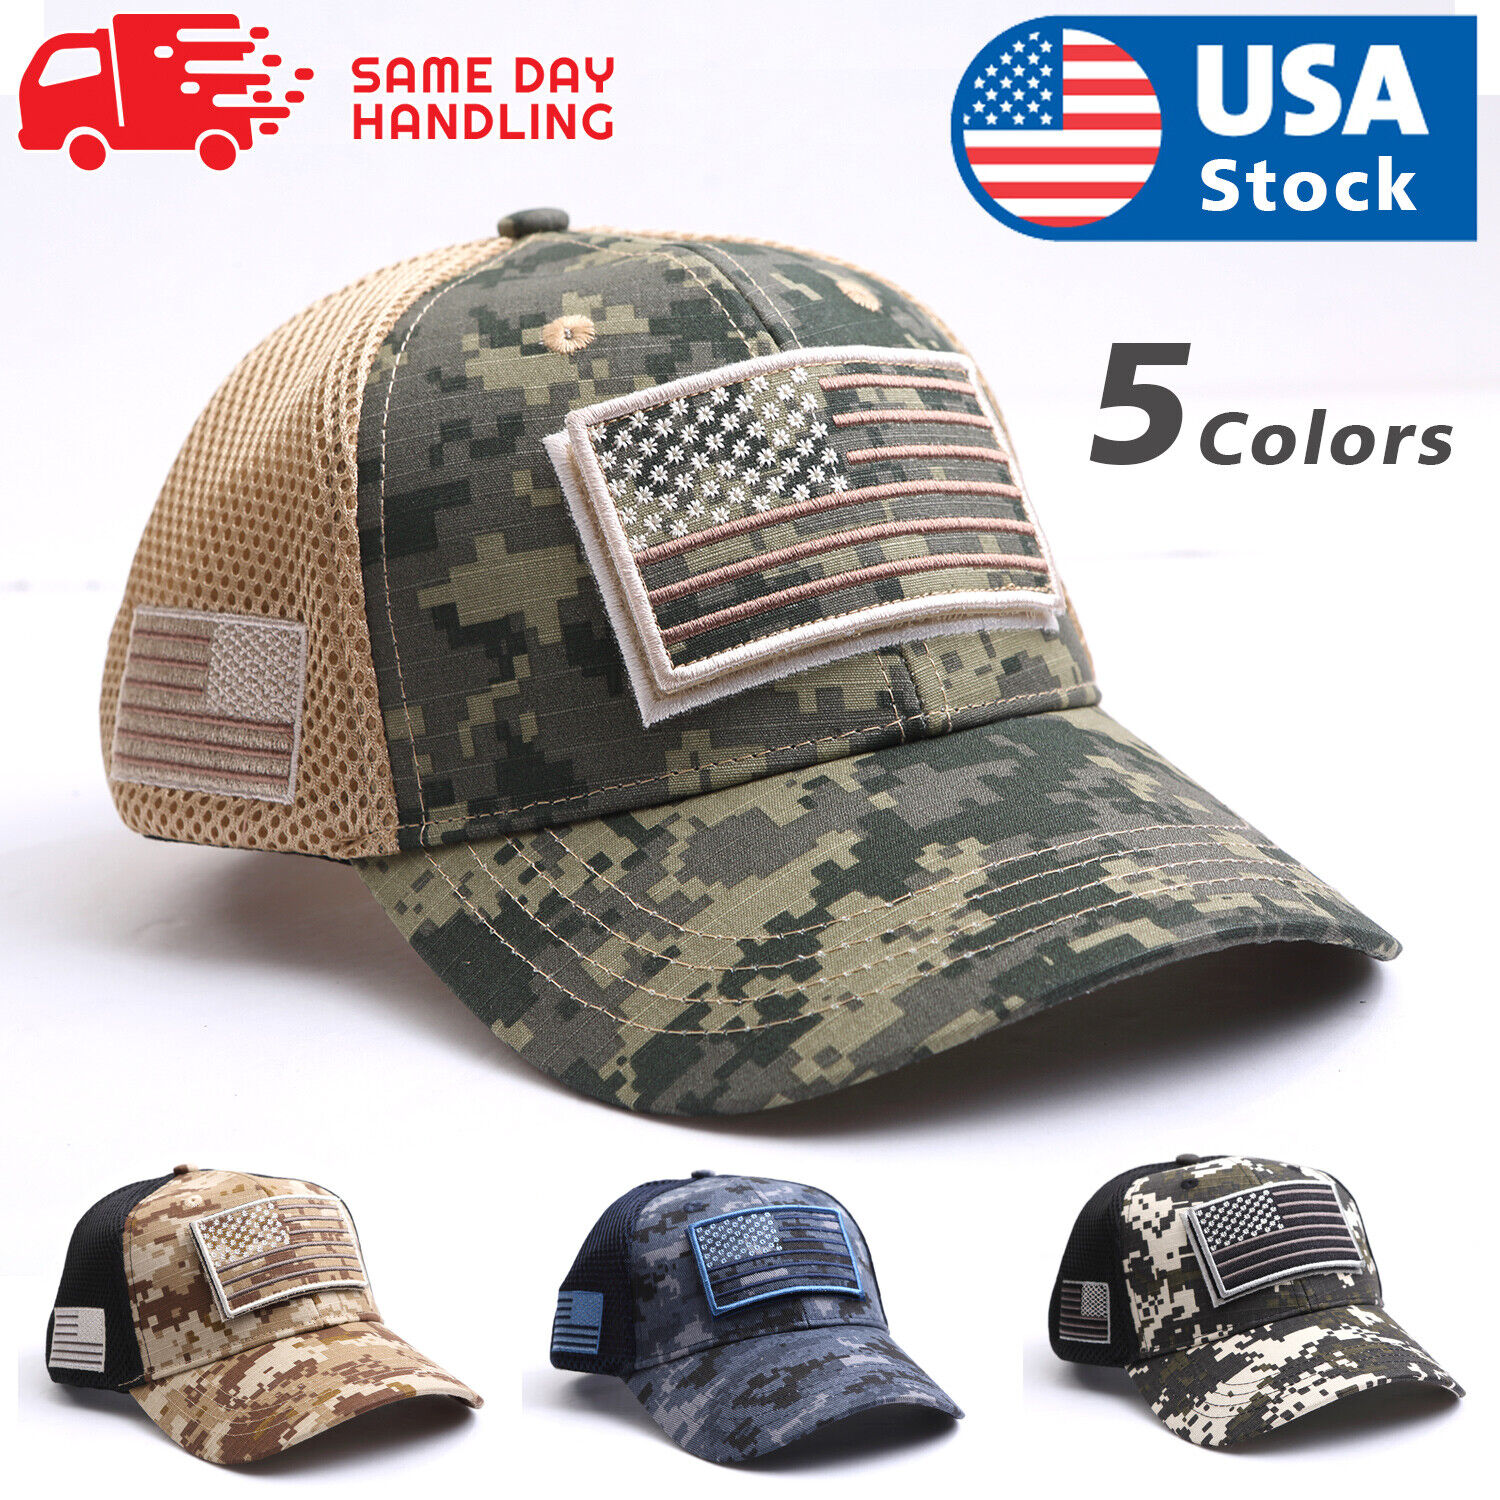 USA American Flag Hat Detachable Patch Micro Mesh Tactical Operator Military Cap Clothing, Shoes & Accessories